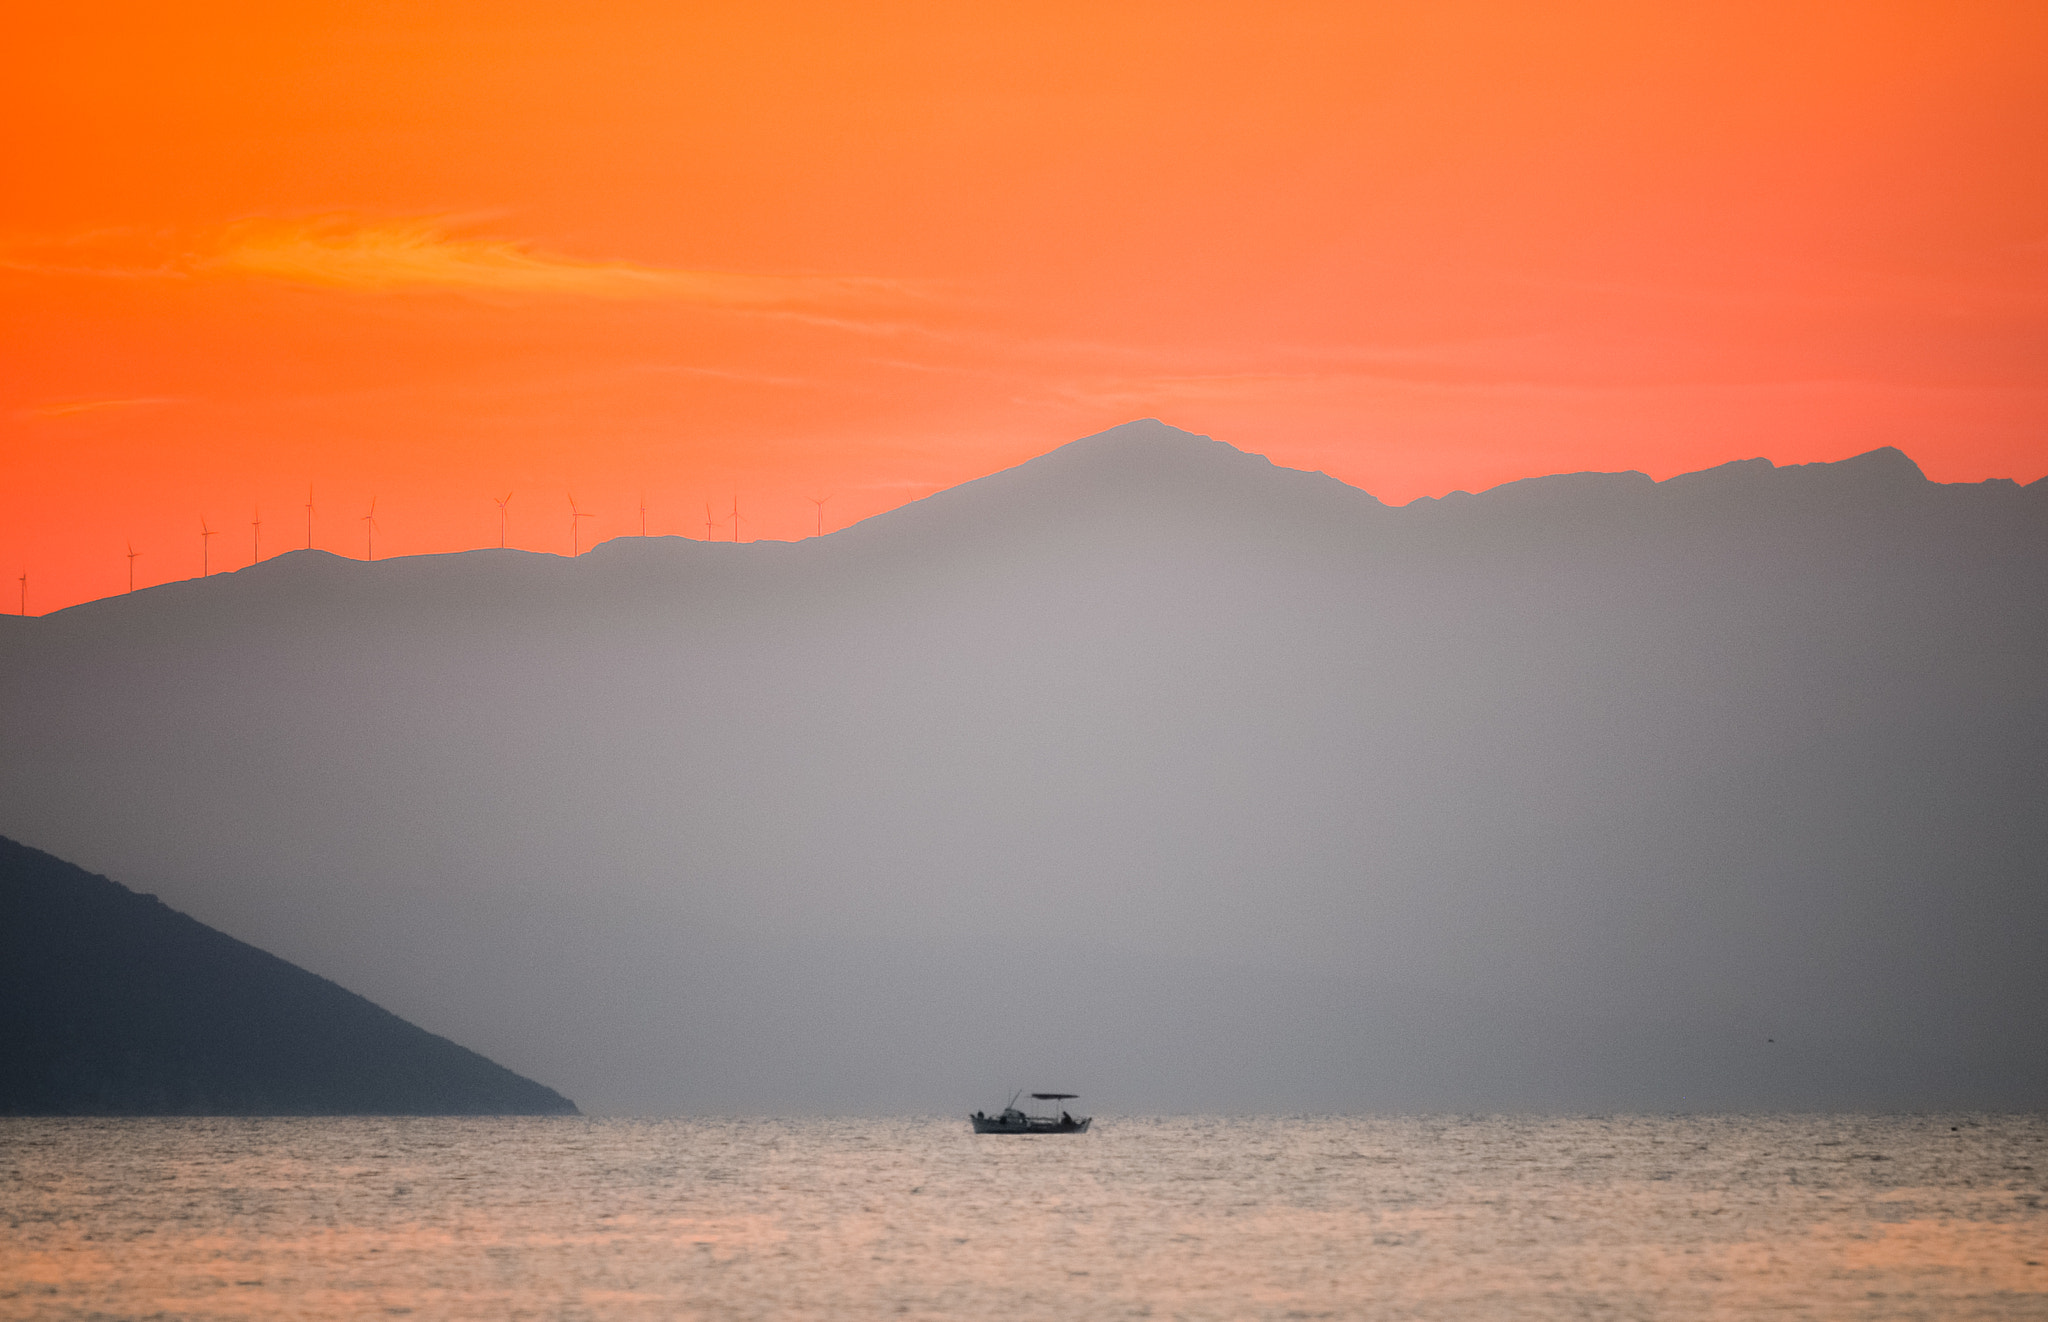 Photograph Sunset in Greece by Hector Melo A. on 500px